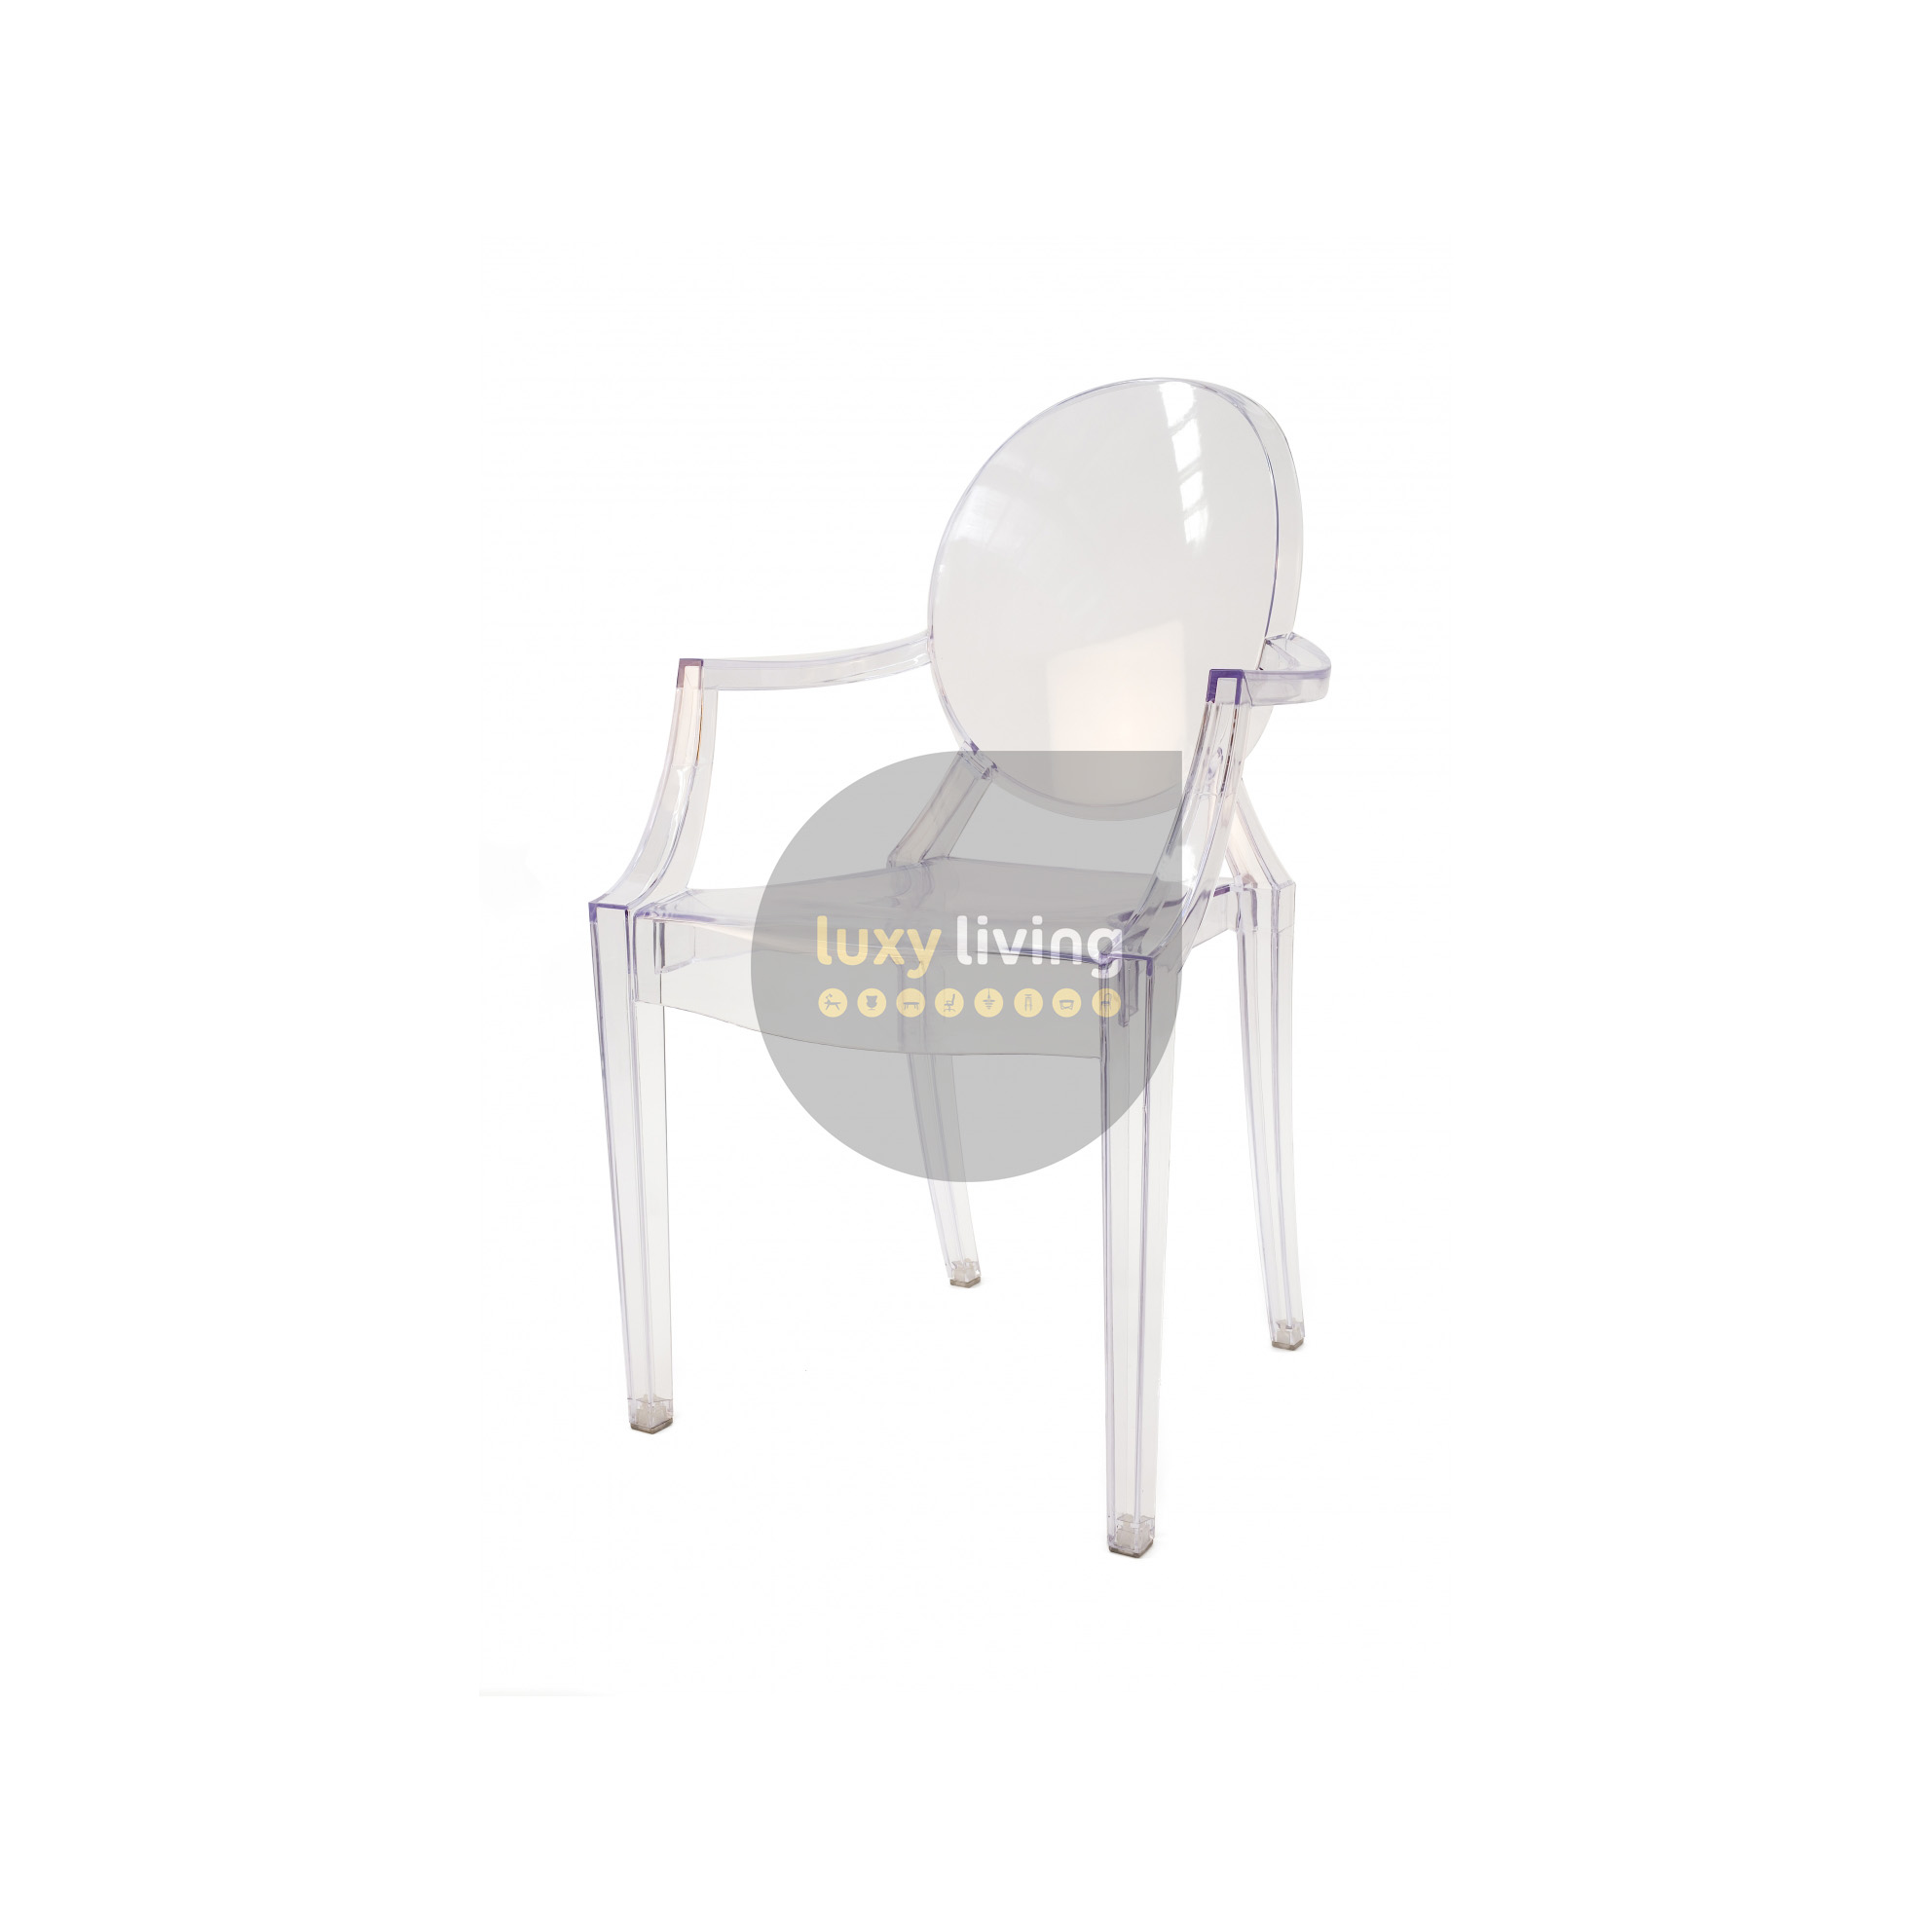 avec smoke idees kartell side starck et dimages hivemodern ghost transparent chair de victoria galerie com louis pack ides philippe replica